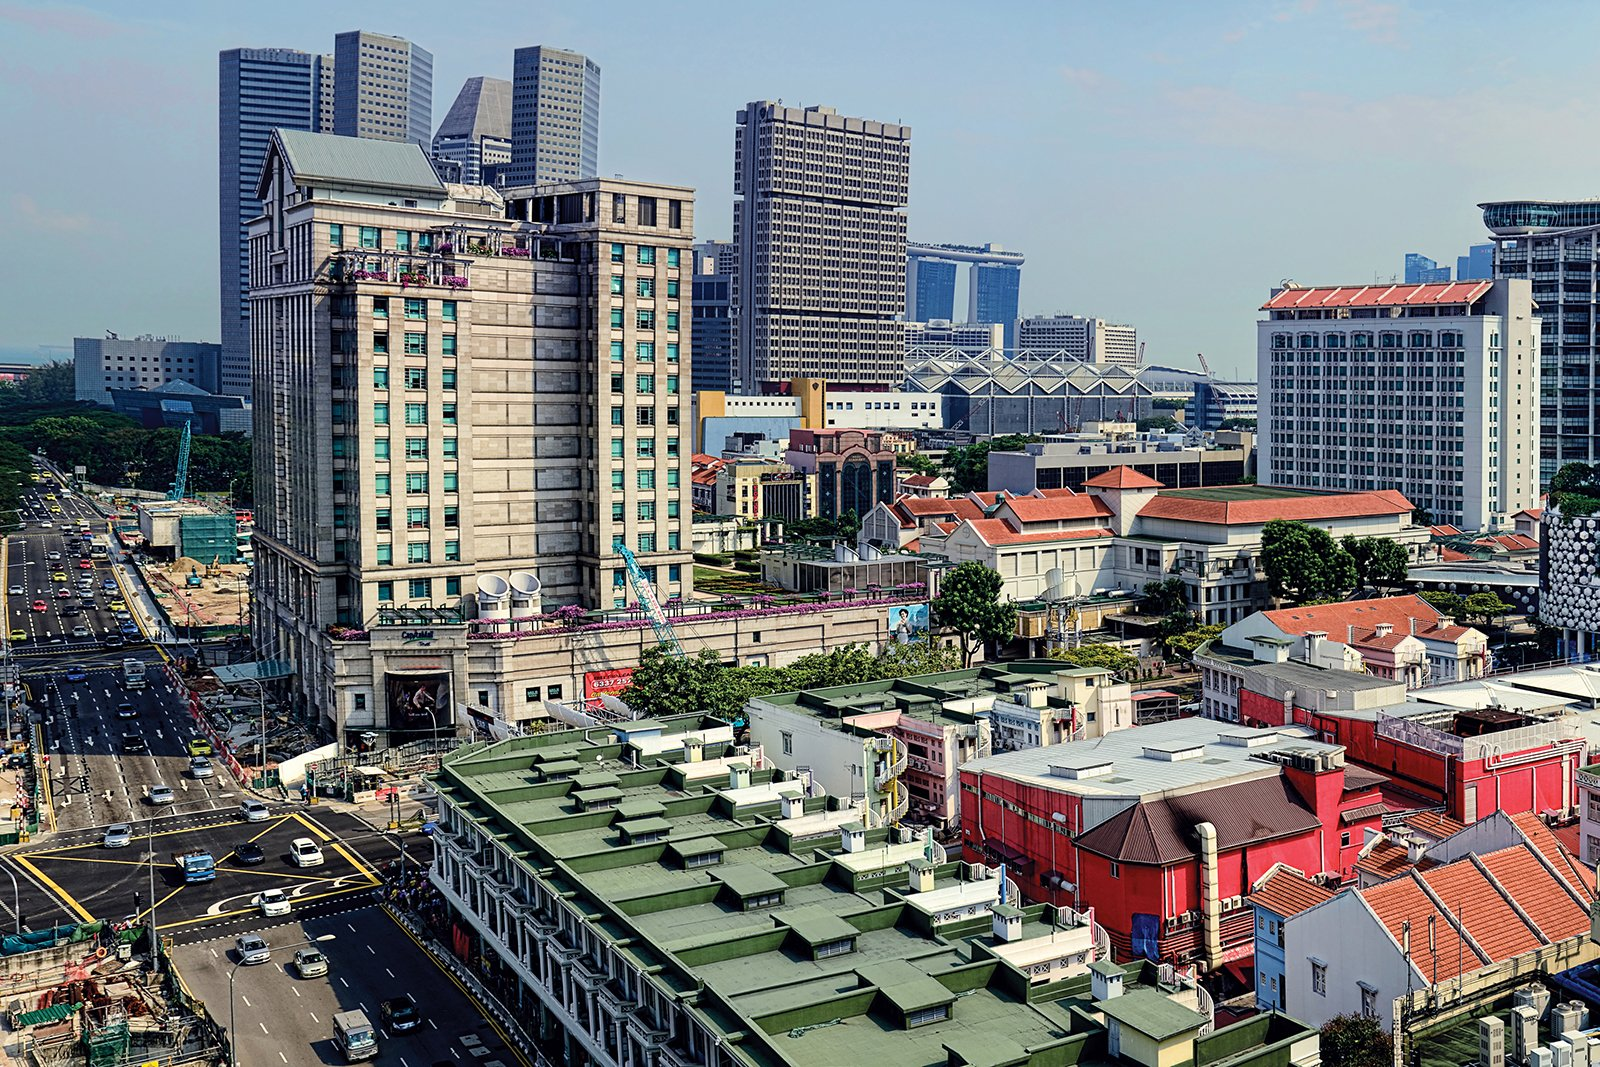 Singapore History - From Early Beginnings to the Colonial Era, World